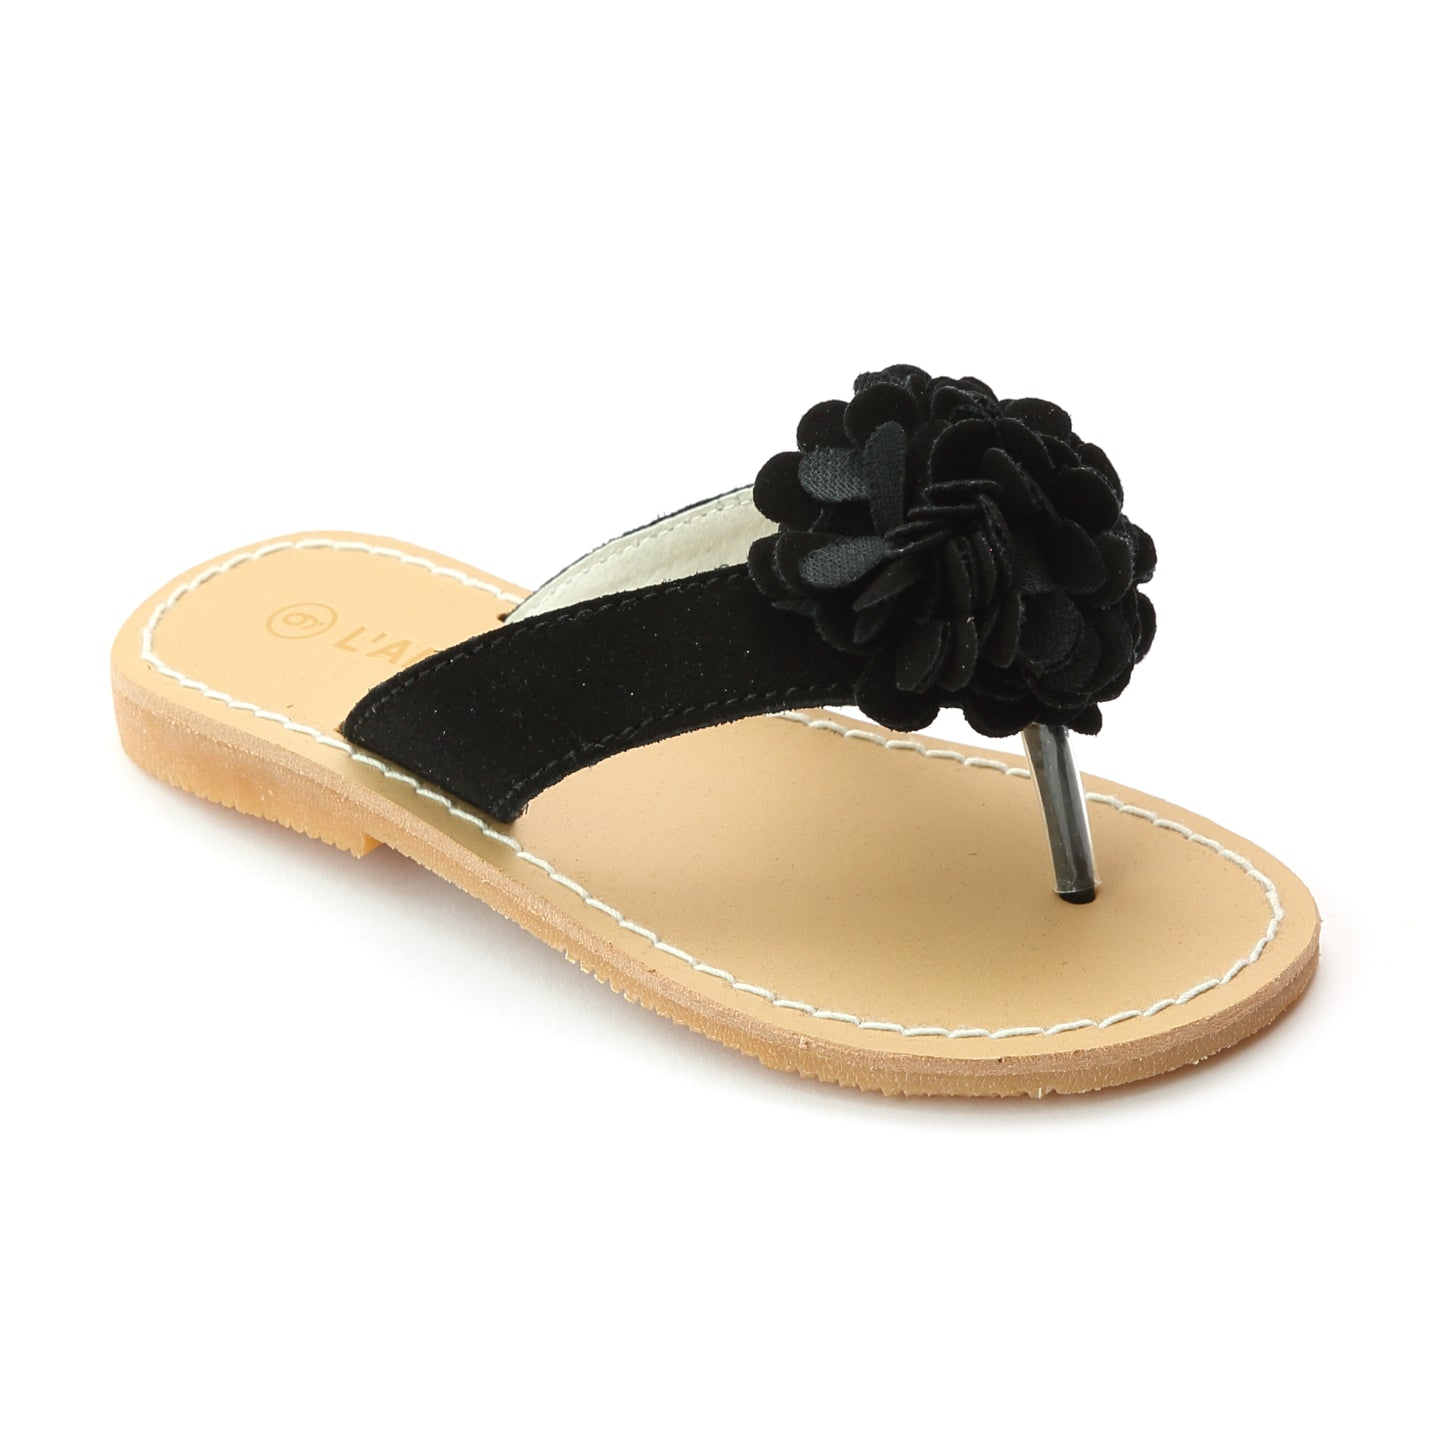 63c7dfc7c L Amour Girls Black Pom Pom Nubuck Leather Thong Sandals - Babychelle.com